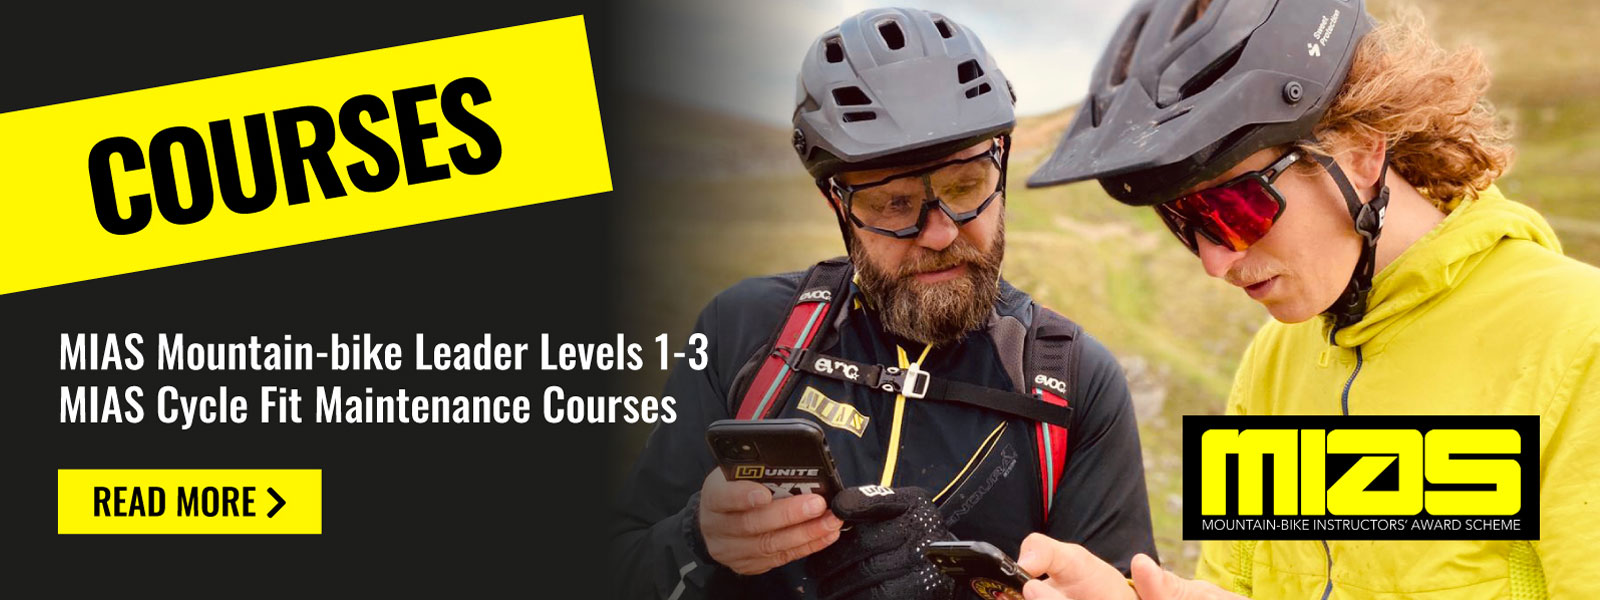 Courses - MIAS Mountain-bike leader Levels 1 - 3 & MIAS Cycle Fit Maintenance Courses - Read more >